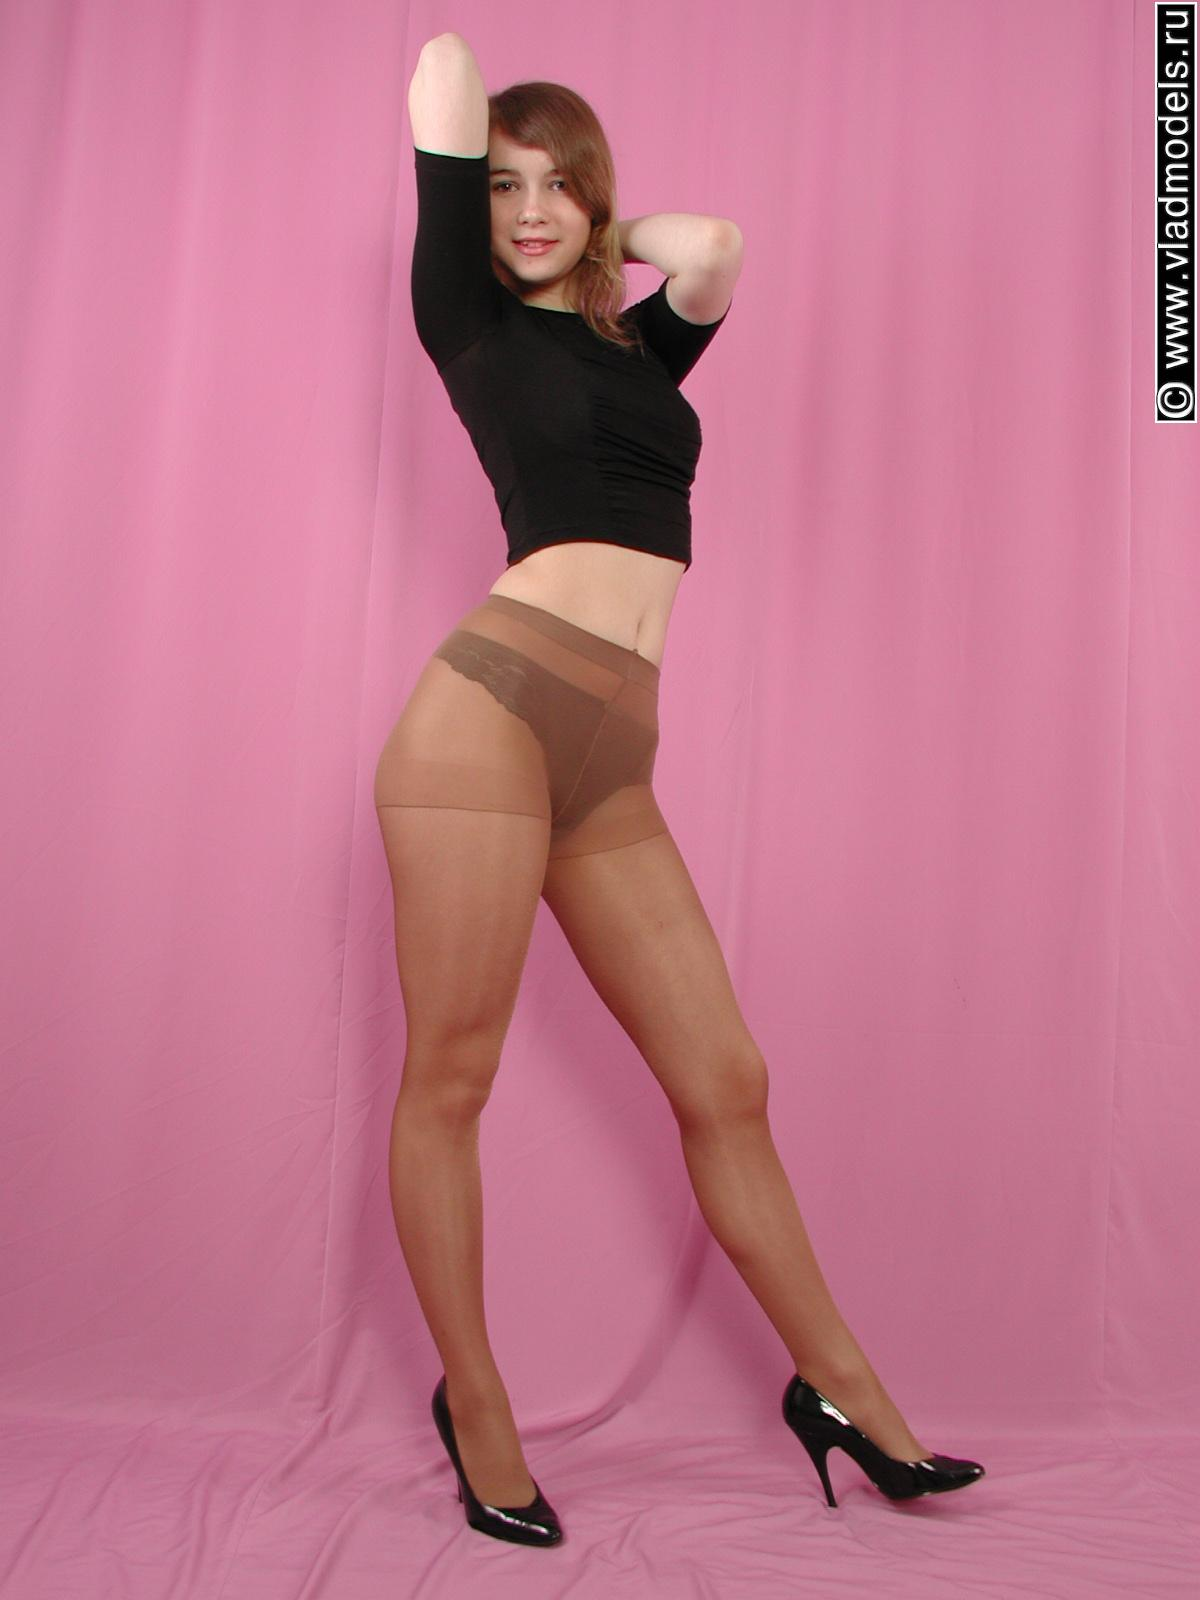 Alisa vlad model pantyhose advise you